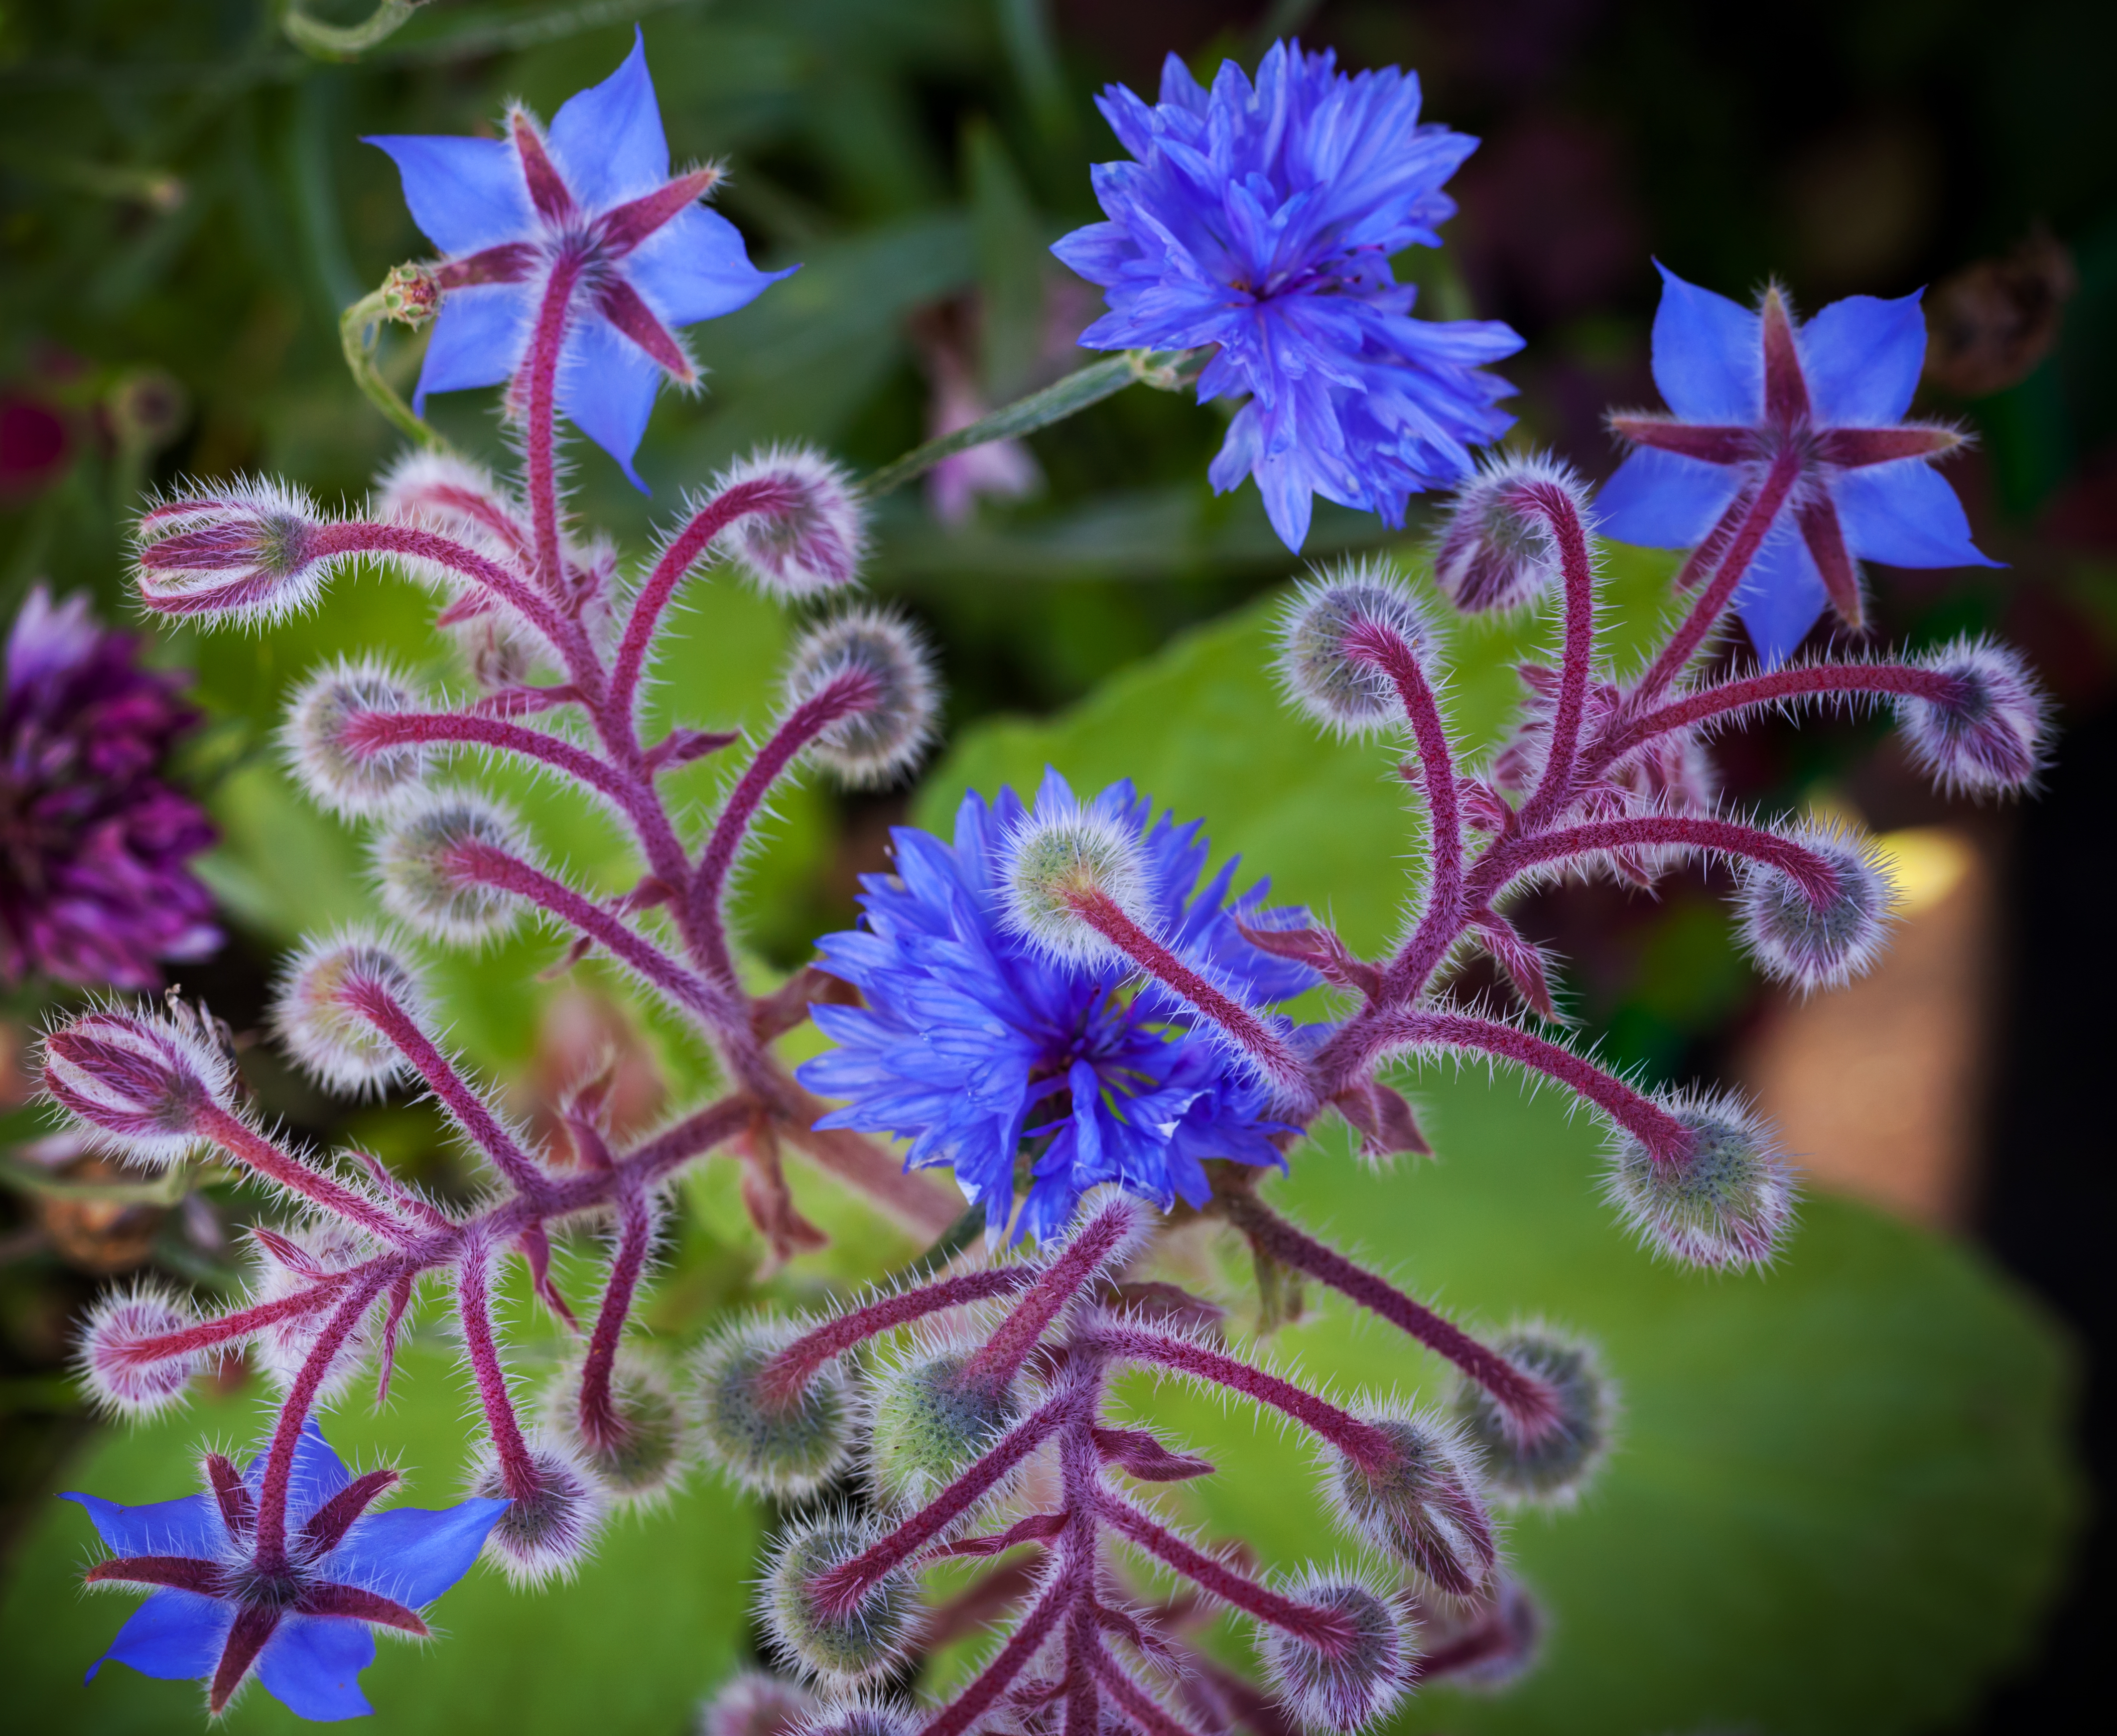 Incredible purple fuzzy buds and bloomed flowers of the borage plant